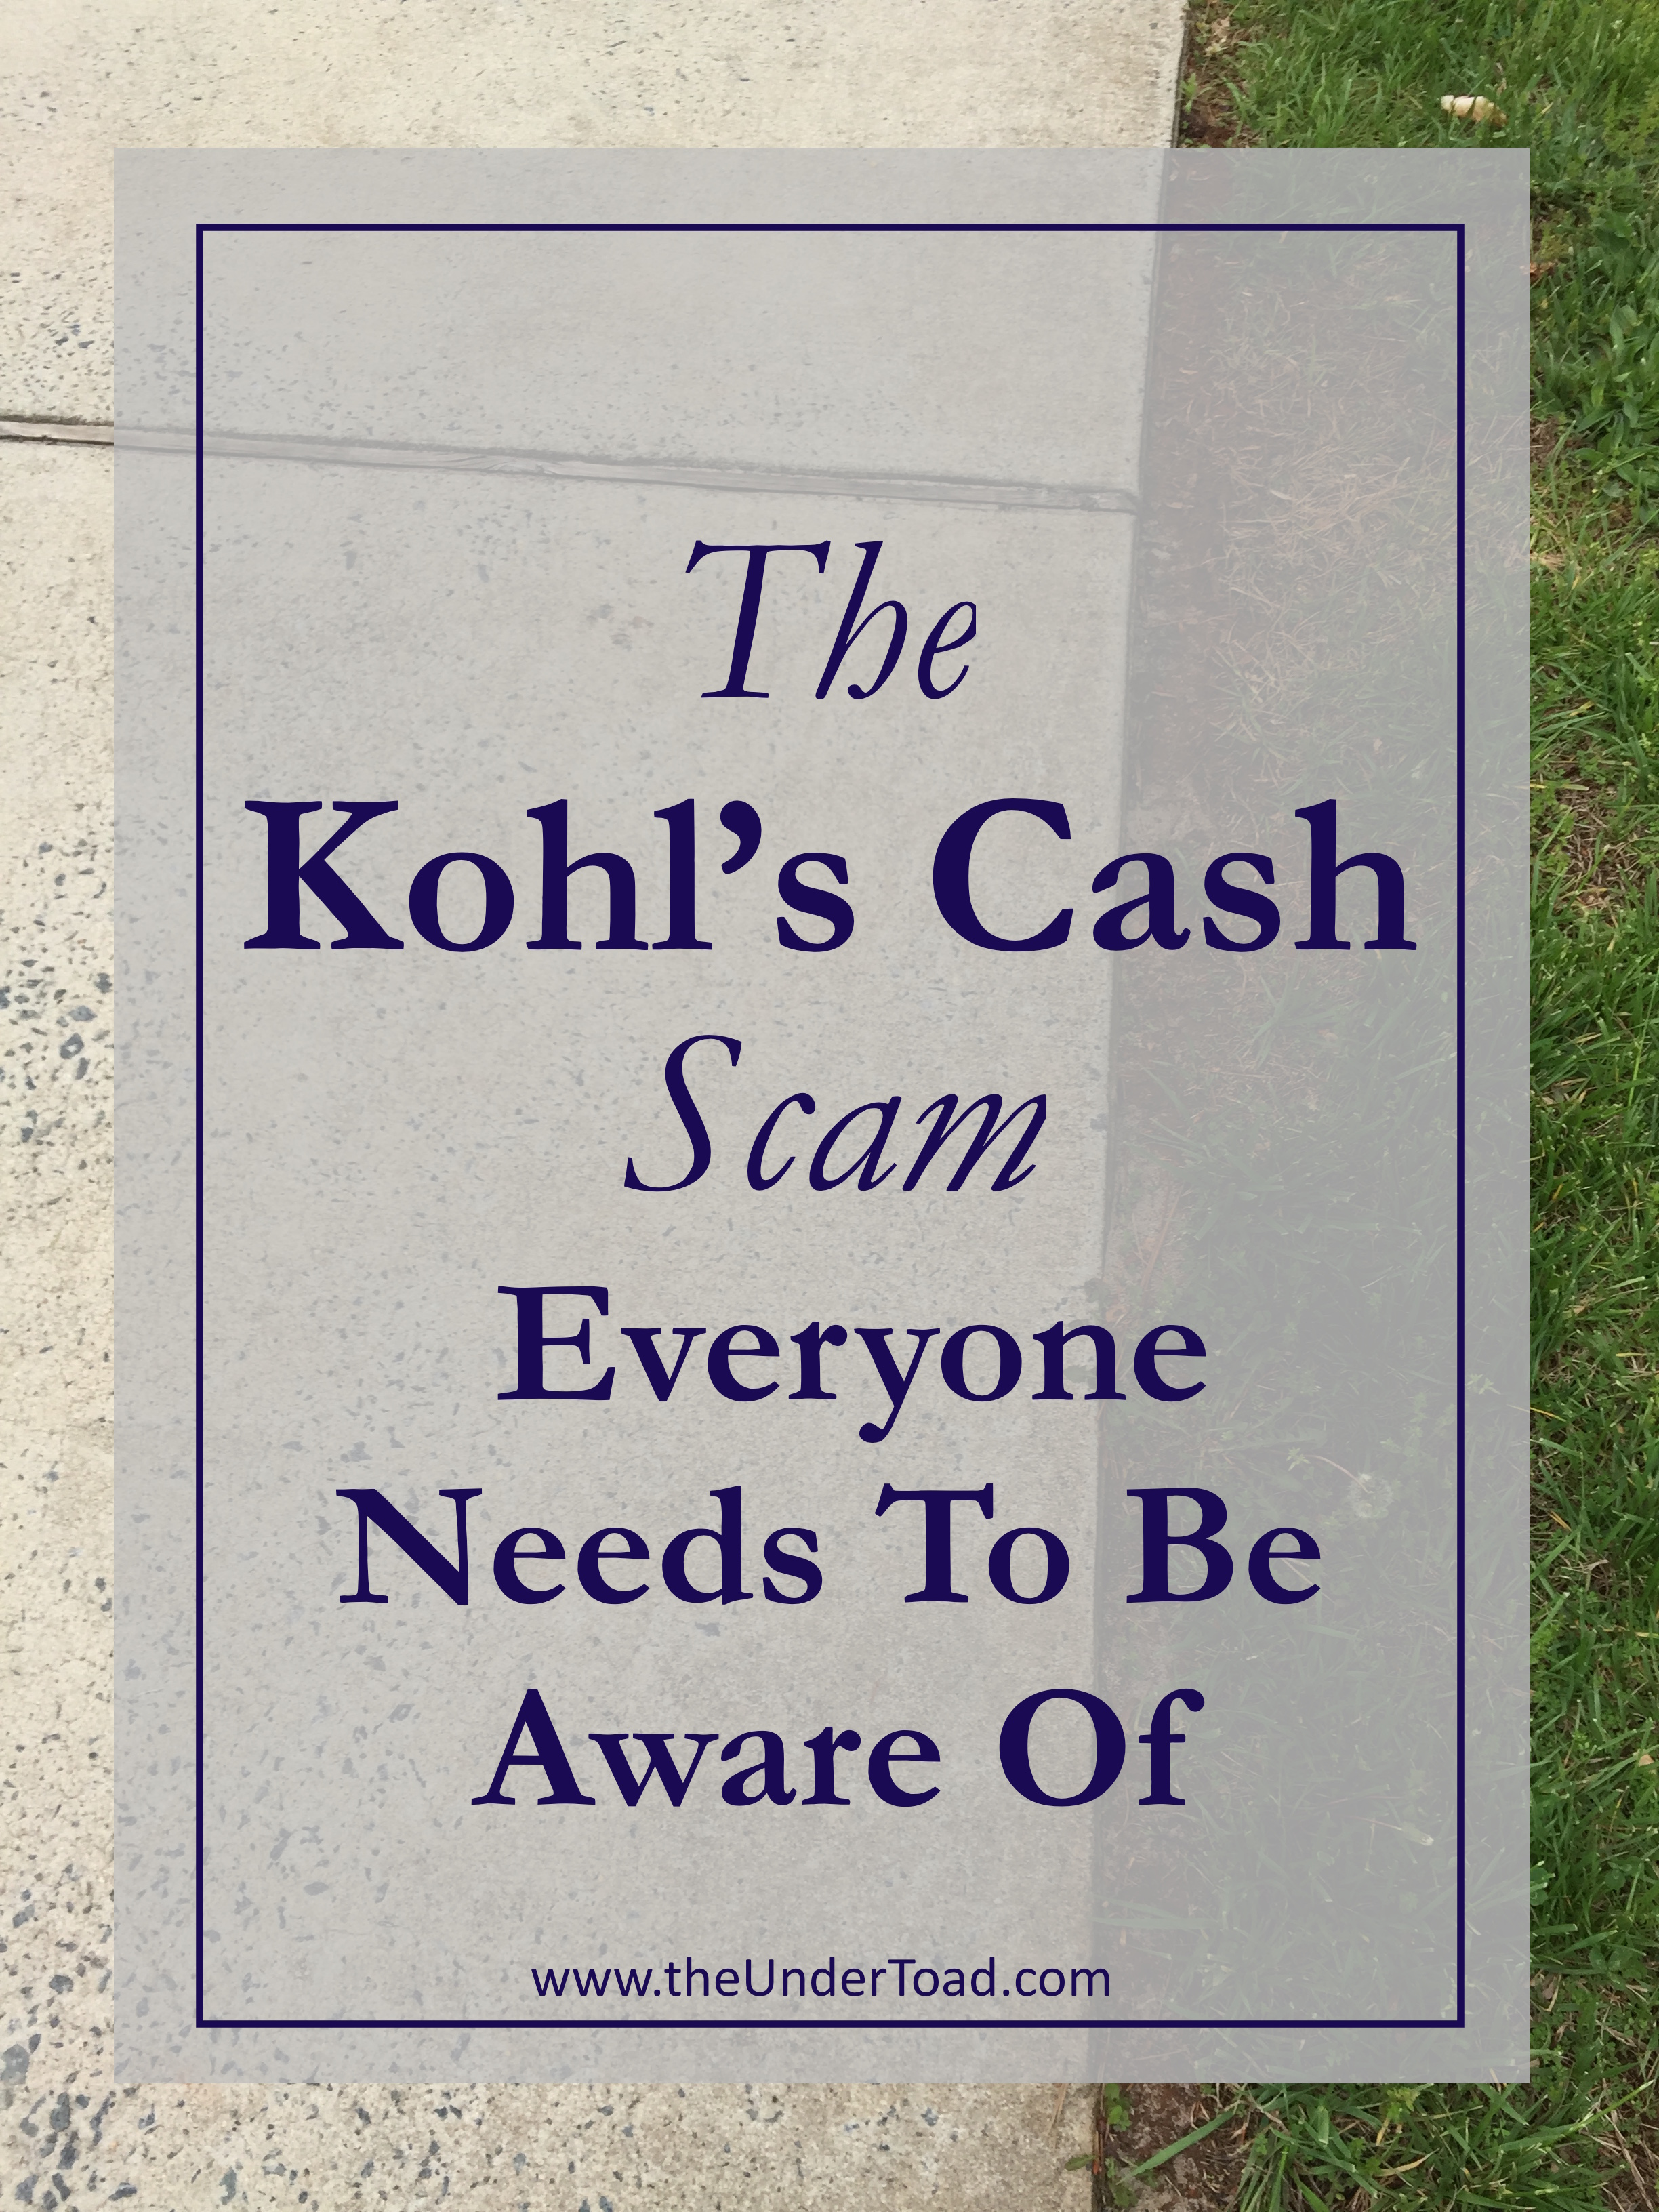 Has My Kohl S Account Been Hacked The Undertoad